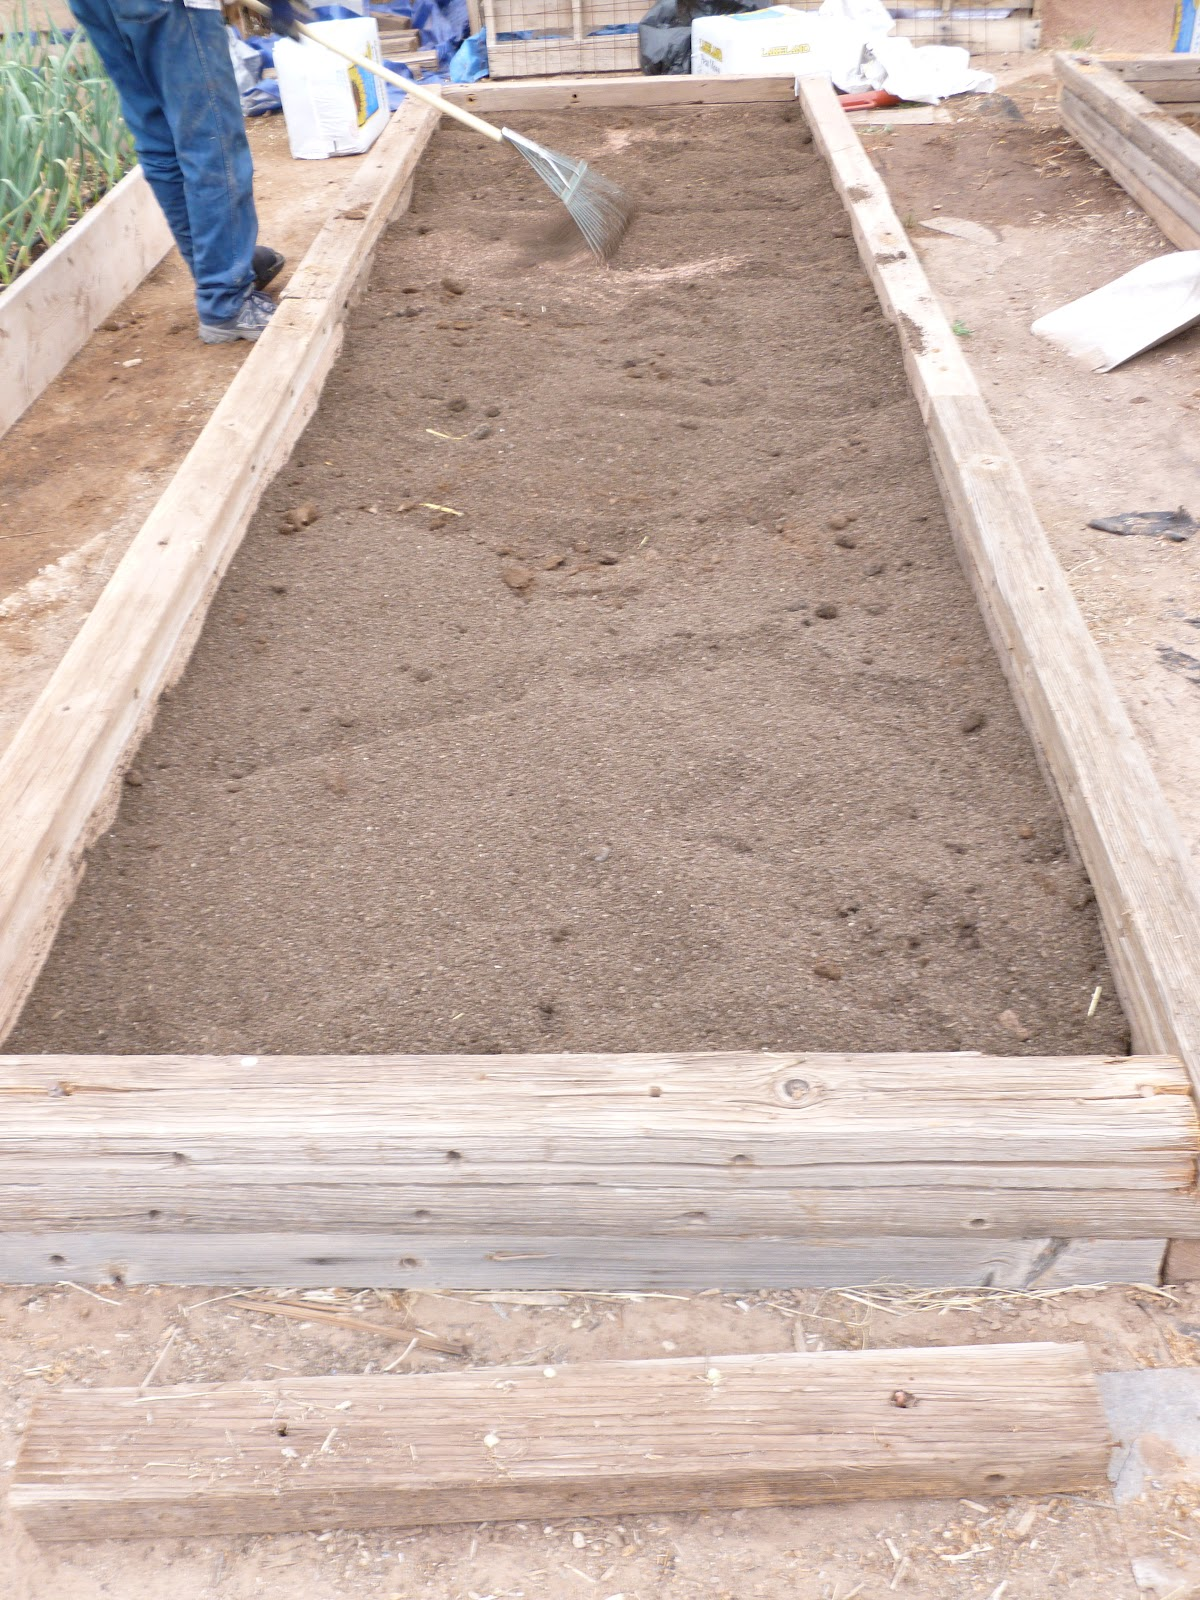 Dusty River Gardens: Soil mix for Raised Beds